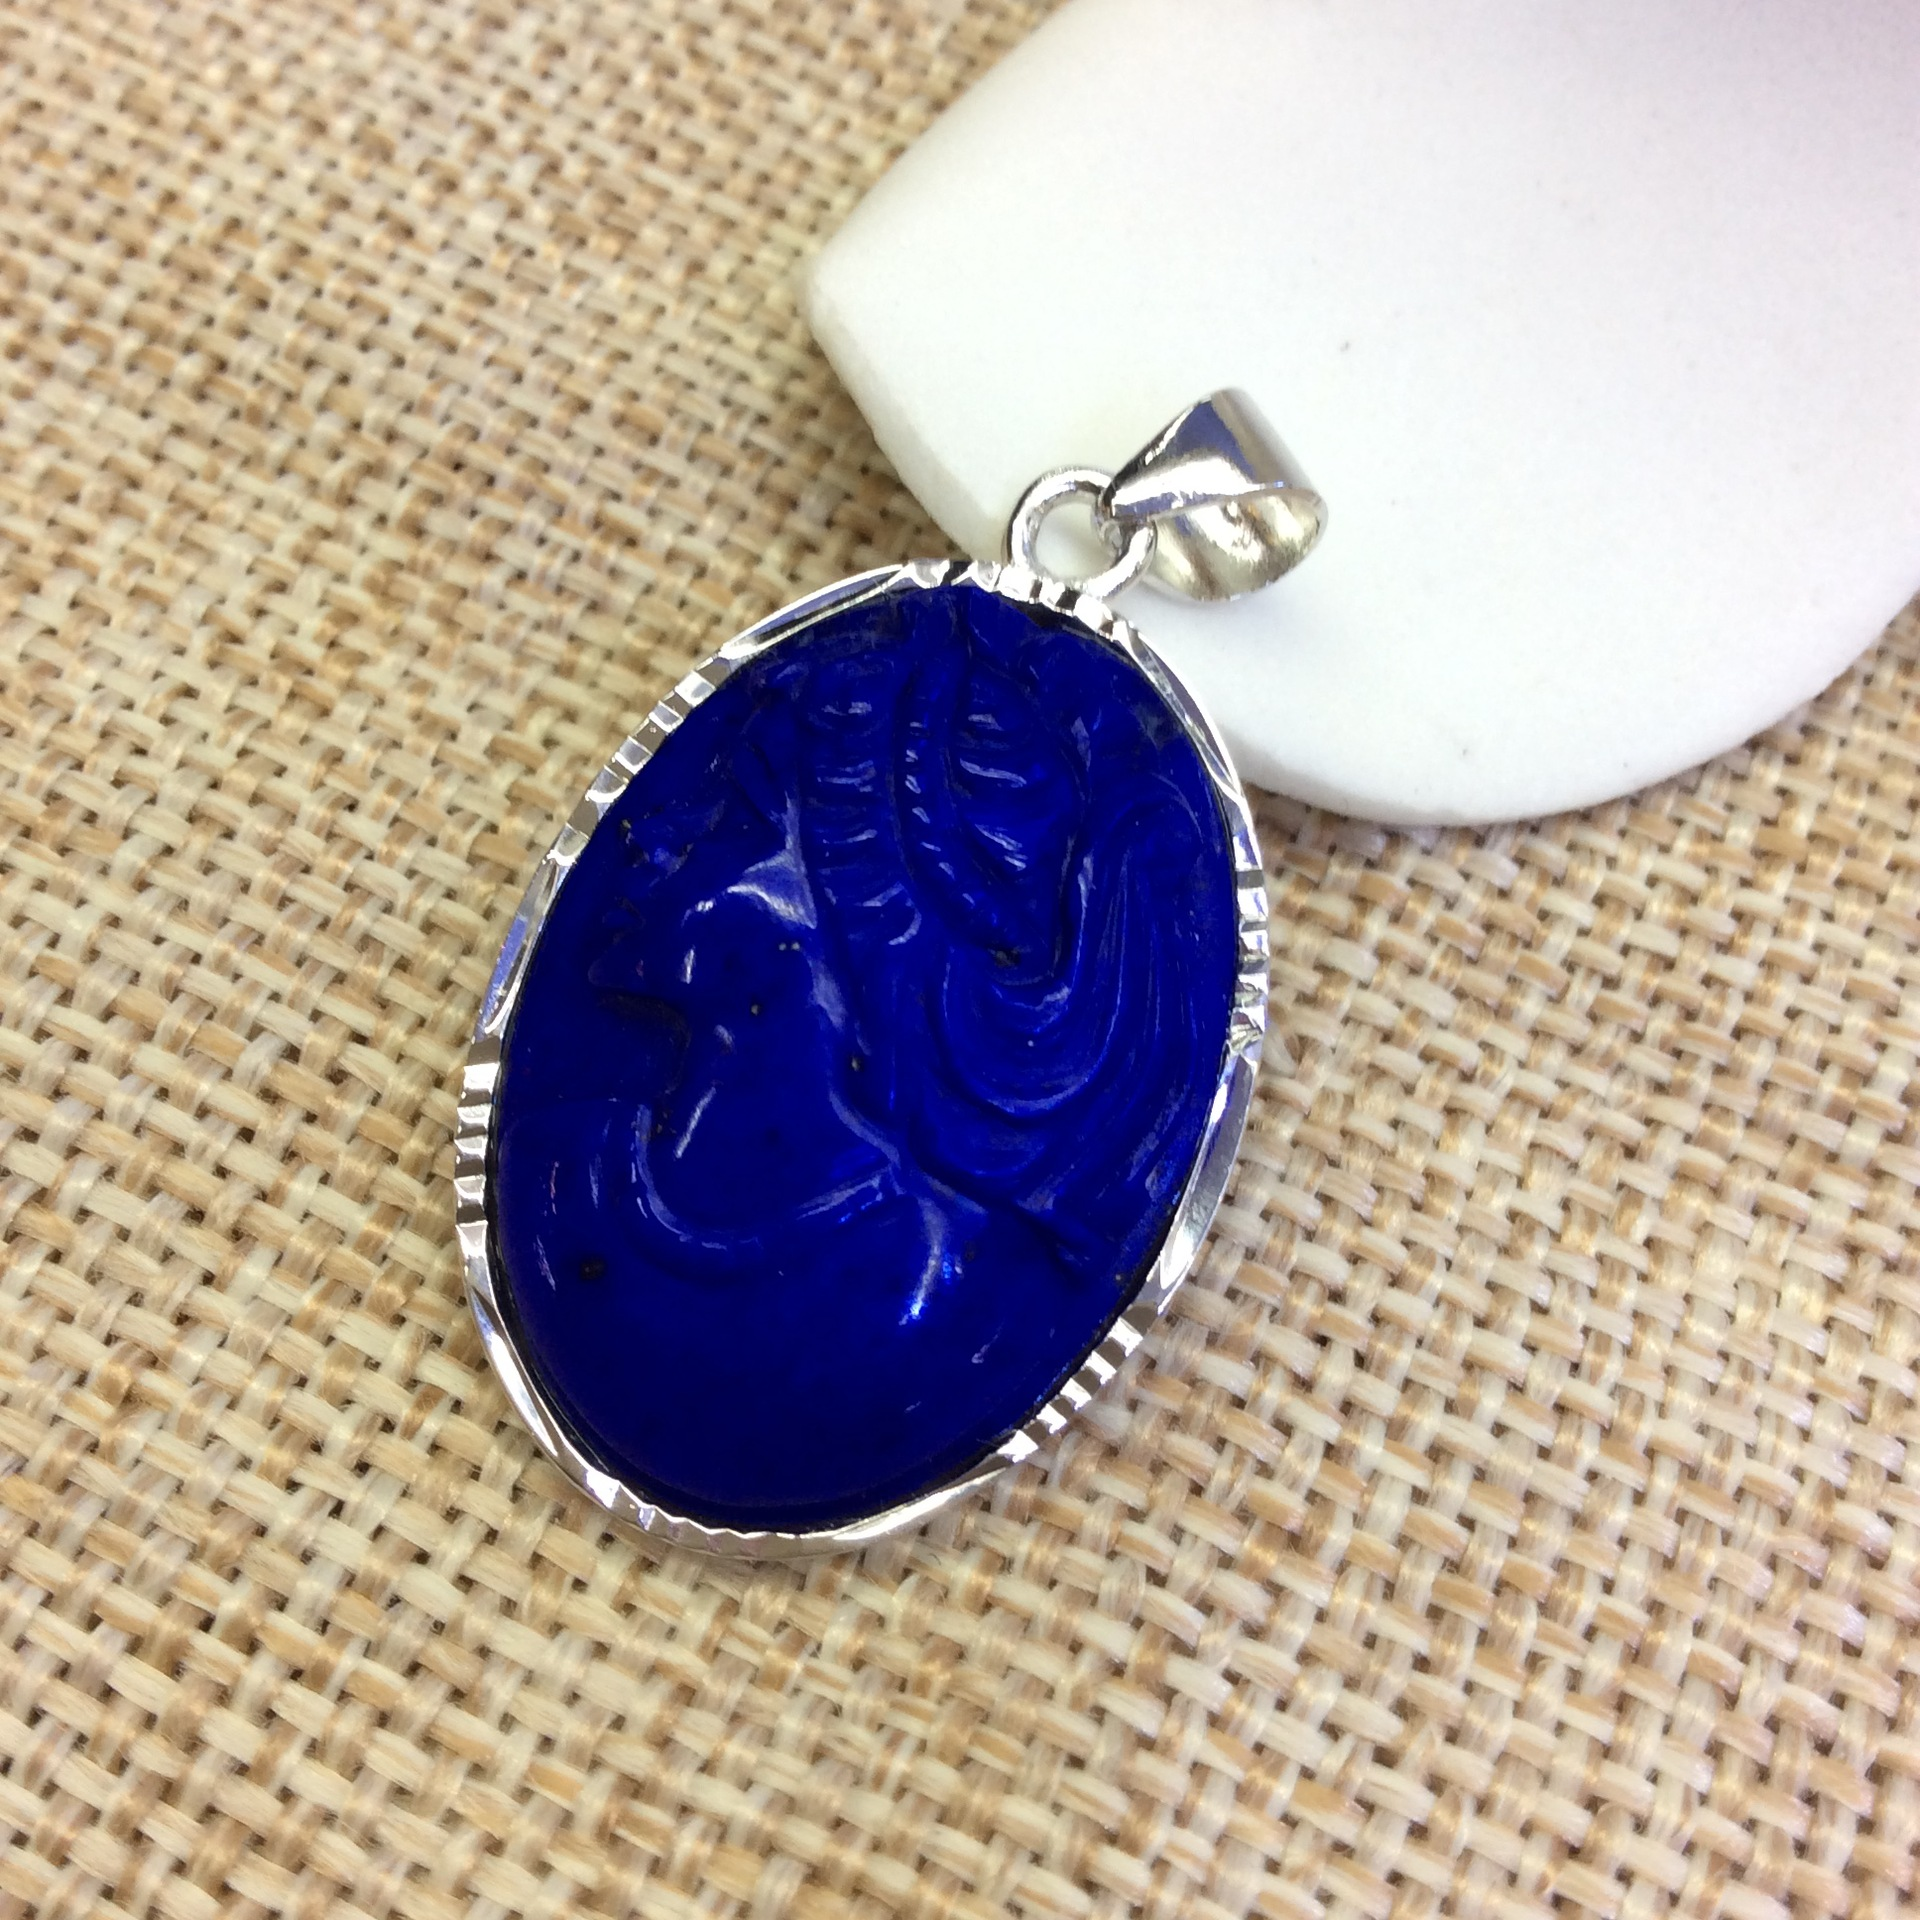 S925 silver inlaid pure nature of Afghanistan lapis lazuli goddess carved head car, Flower Pendant товары для дома flower goddess $5 20 b053